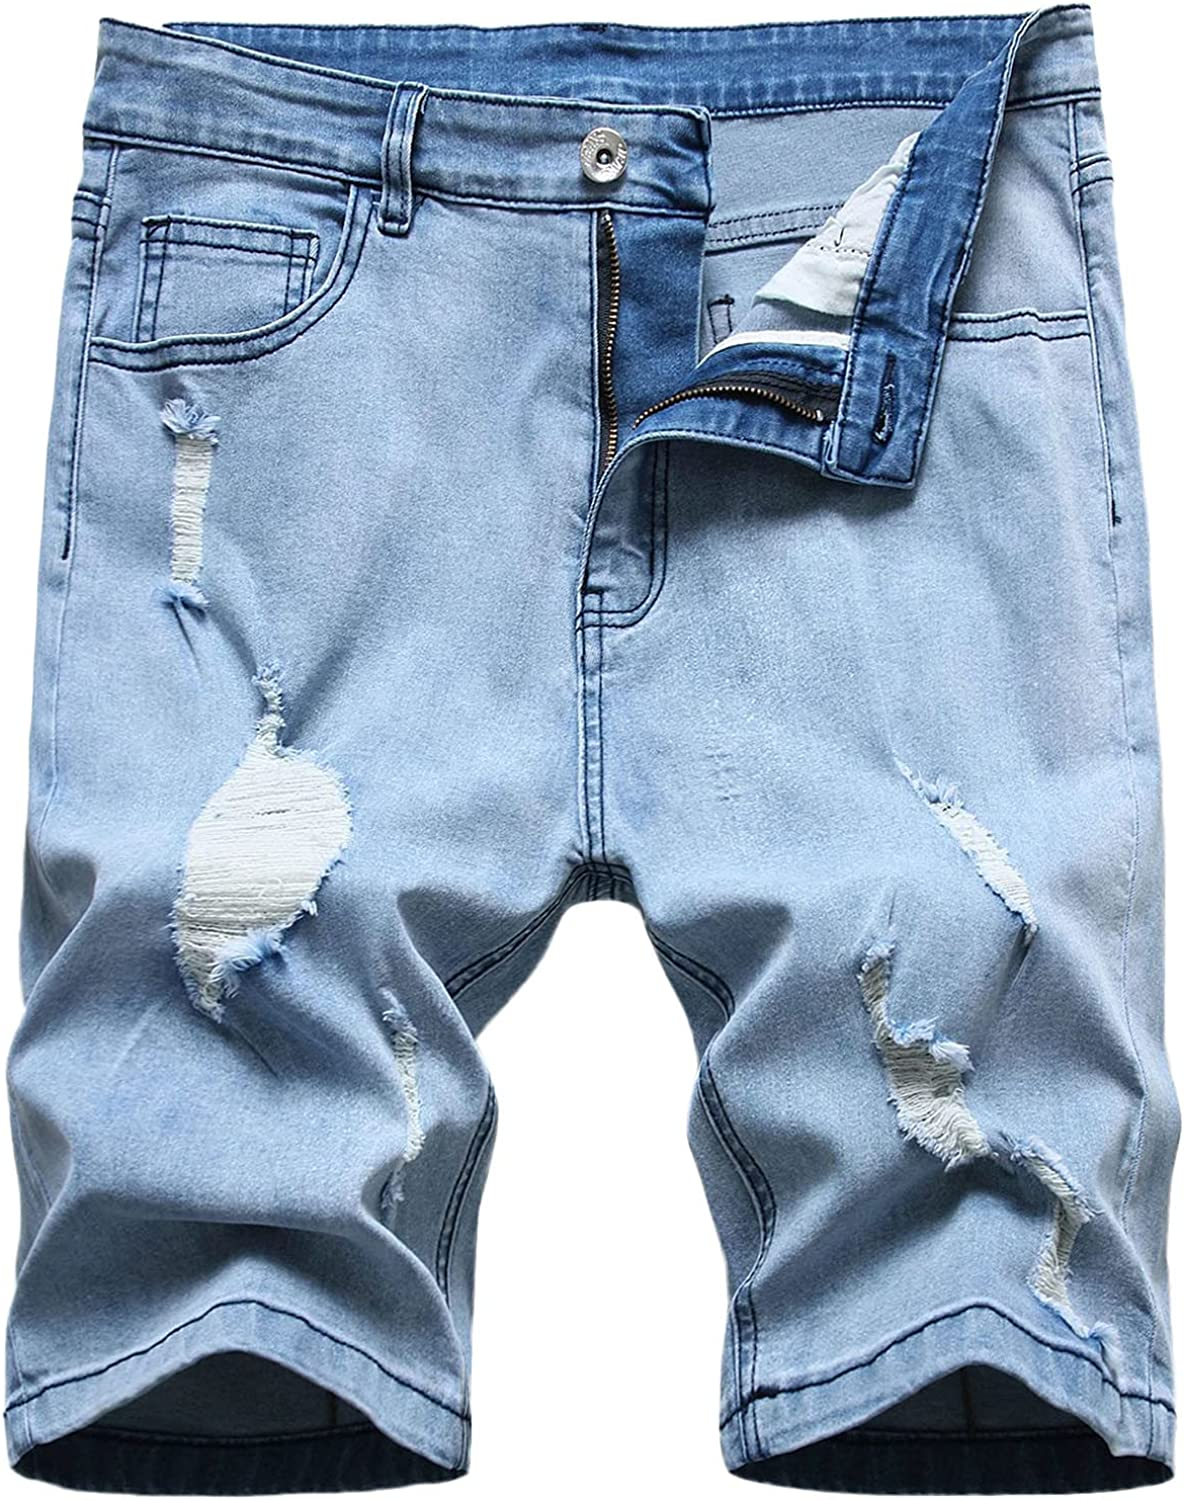 FUNEY Ripped Jeans Shorts for Men Moto Biker Washed Distressed Denim Shorts with Broken Hole,Straight Fit Summer Shorts